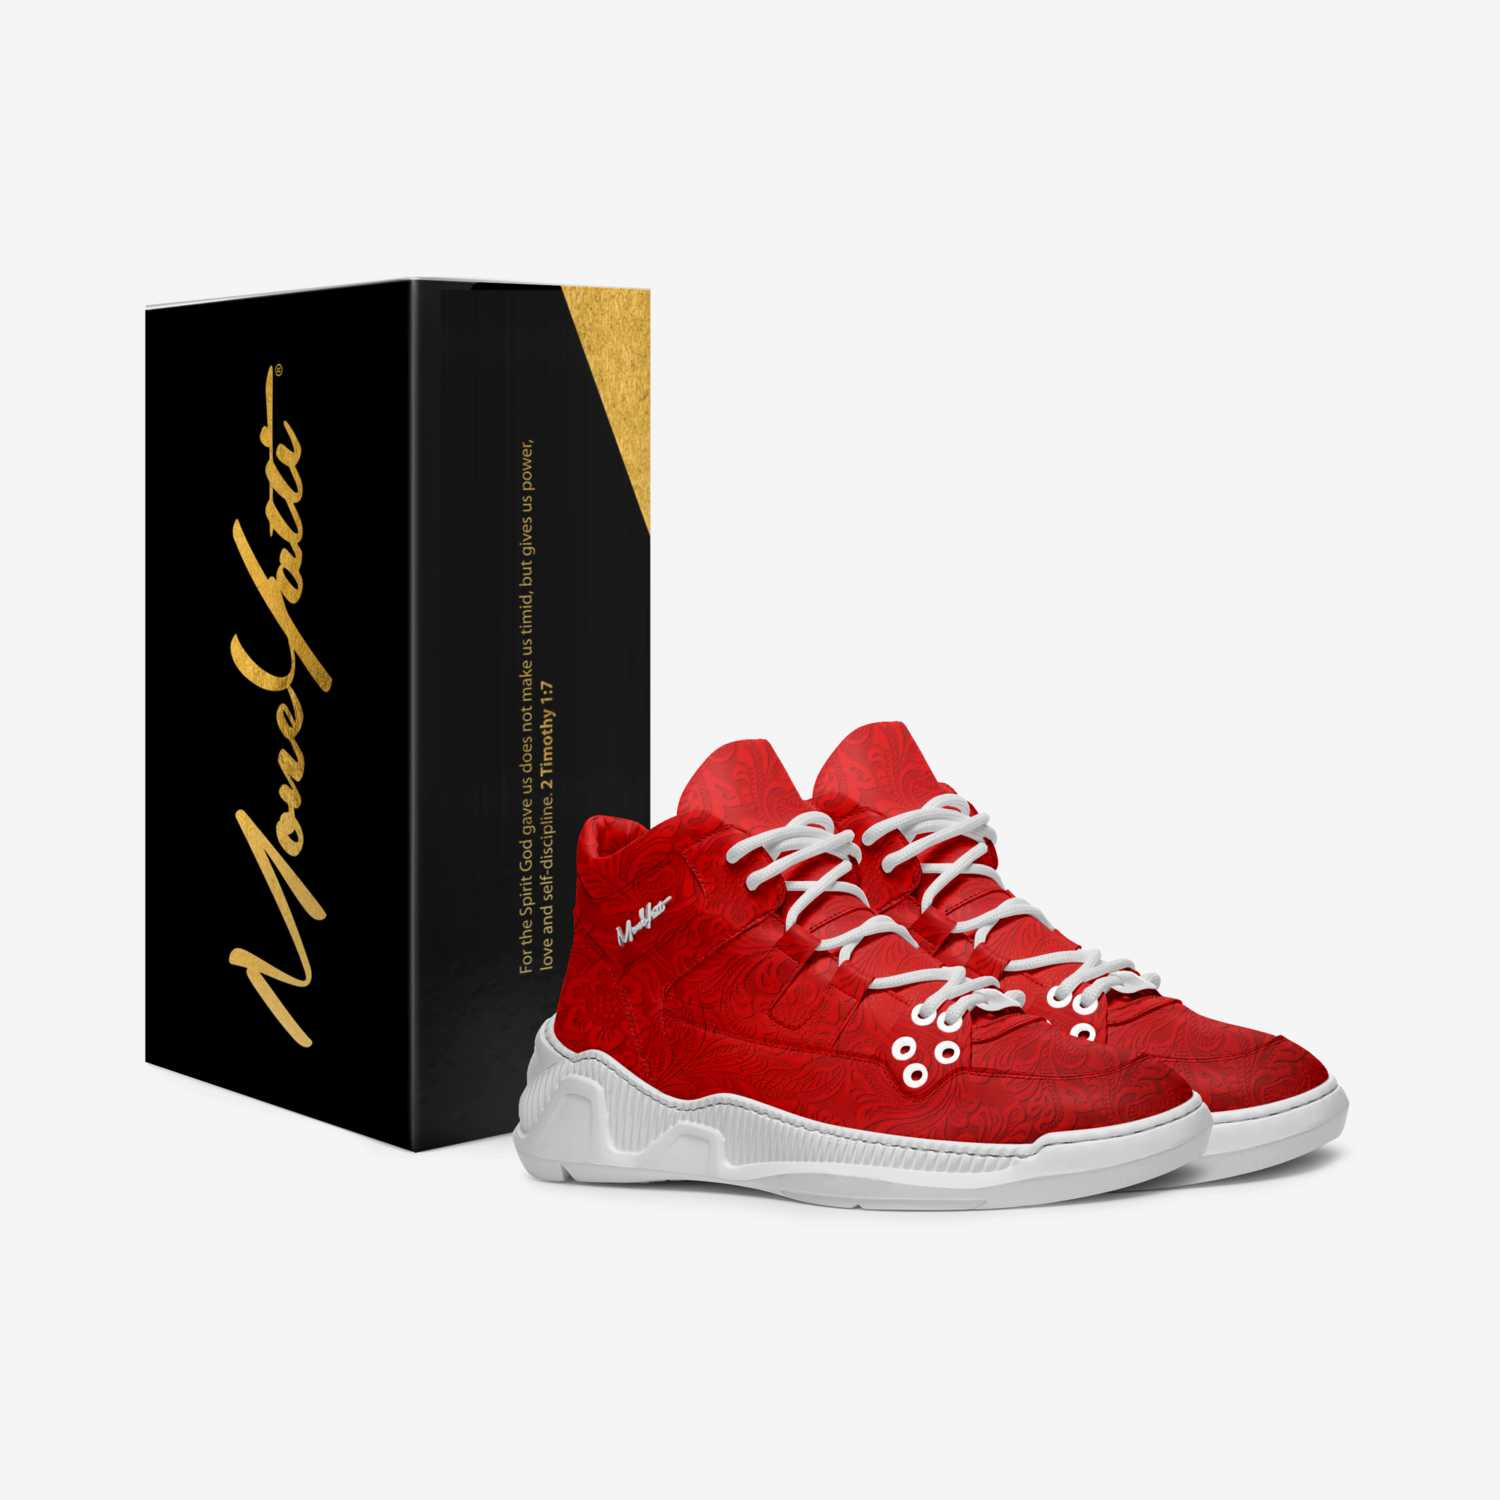 Masterpiece 001 custom made in Italy shoes by Moneyatti Brand | Box view